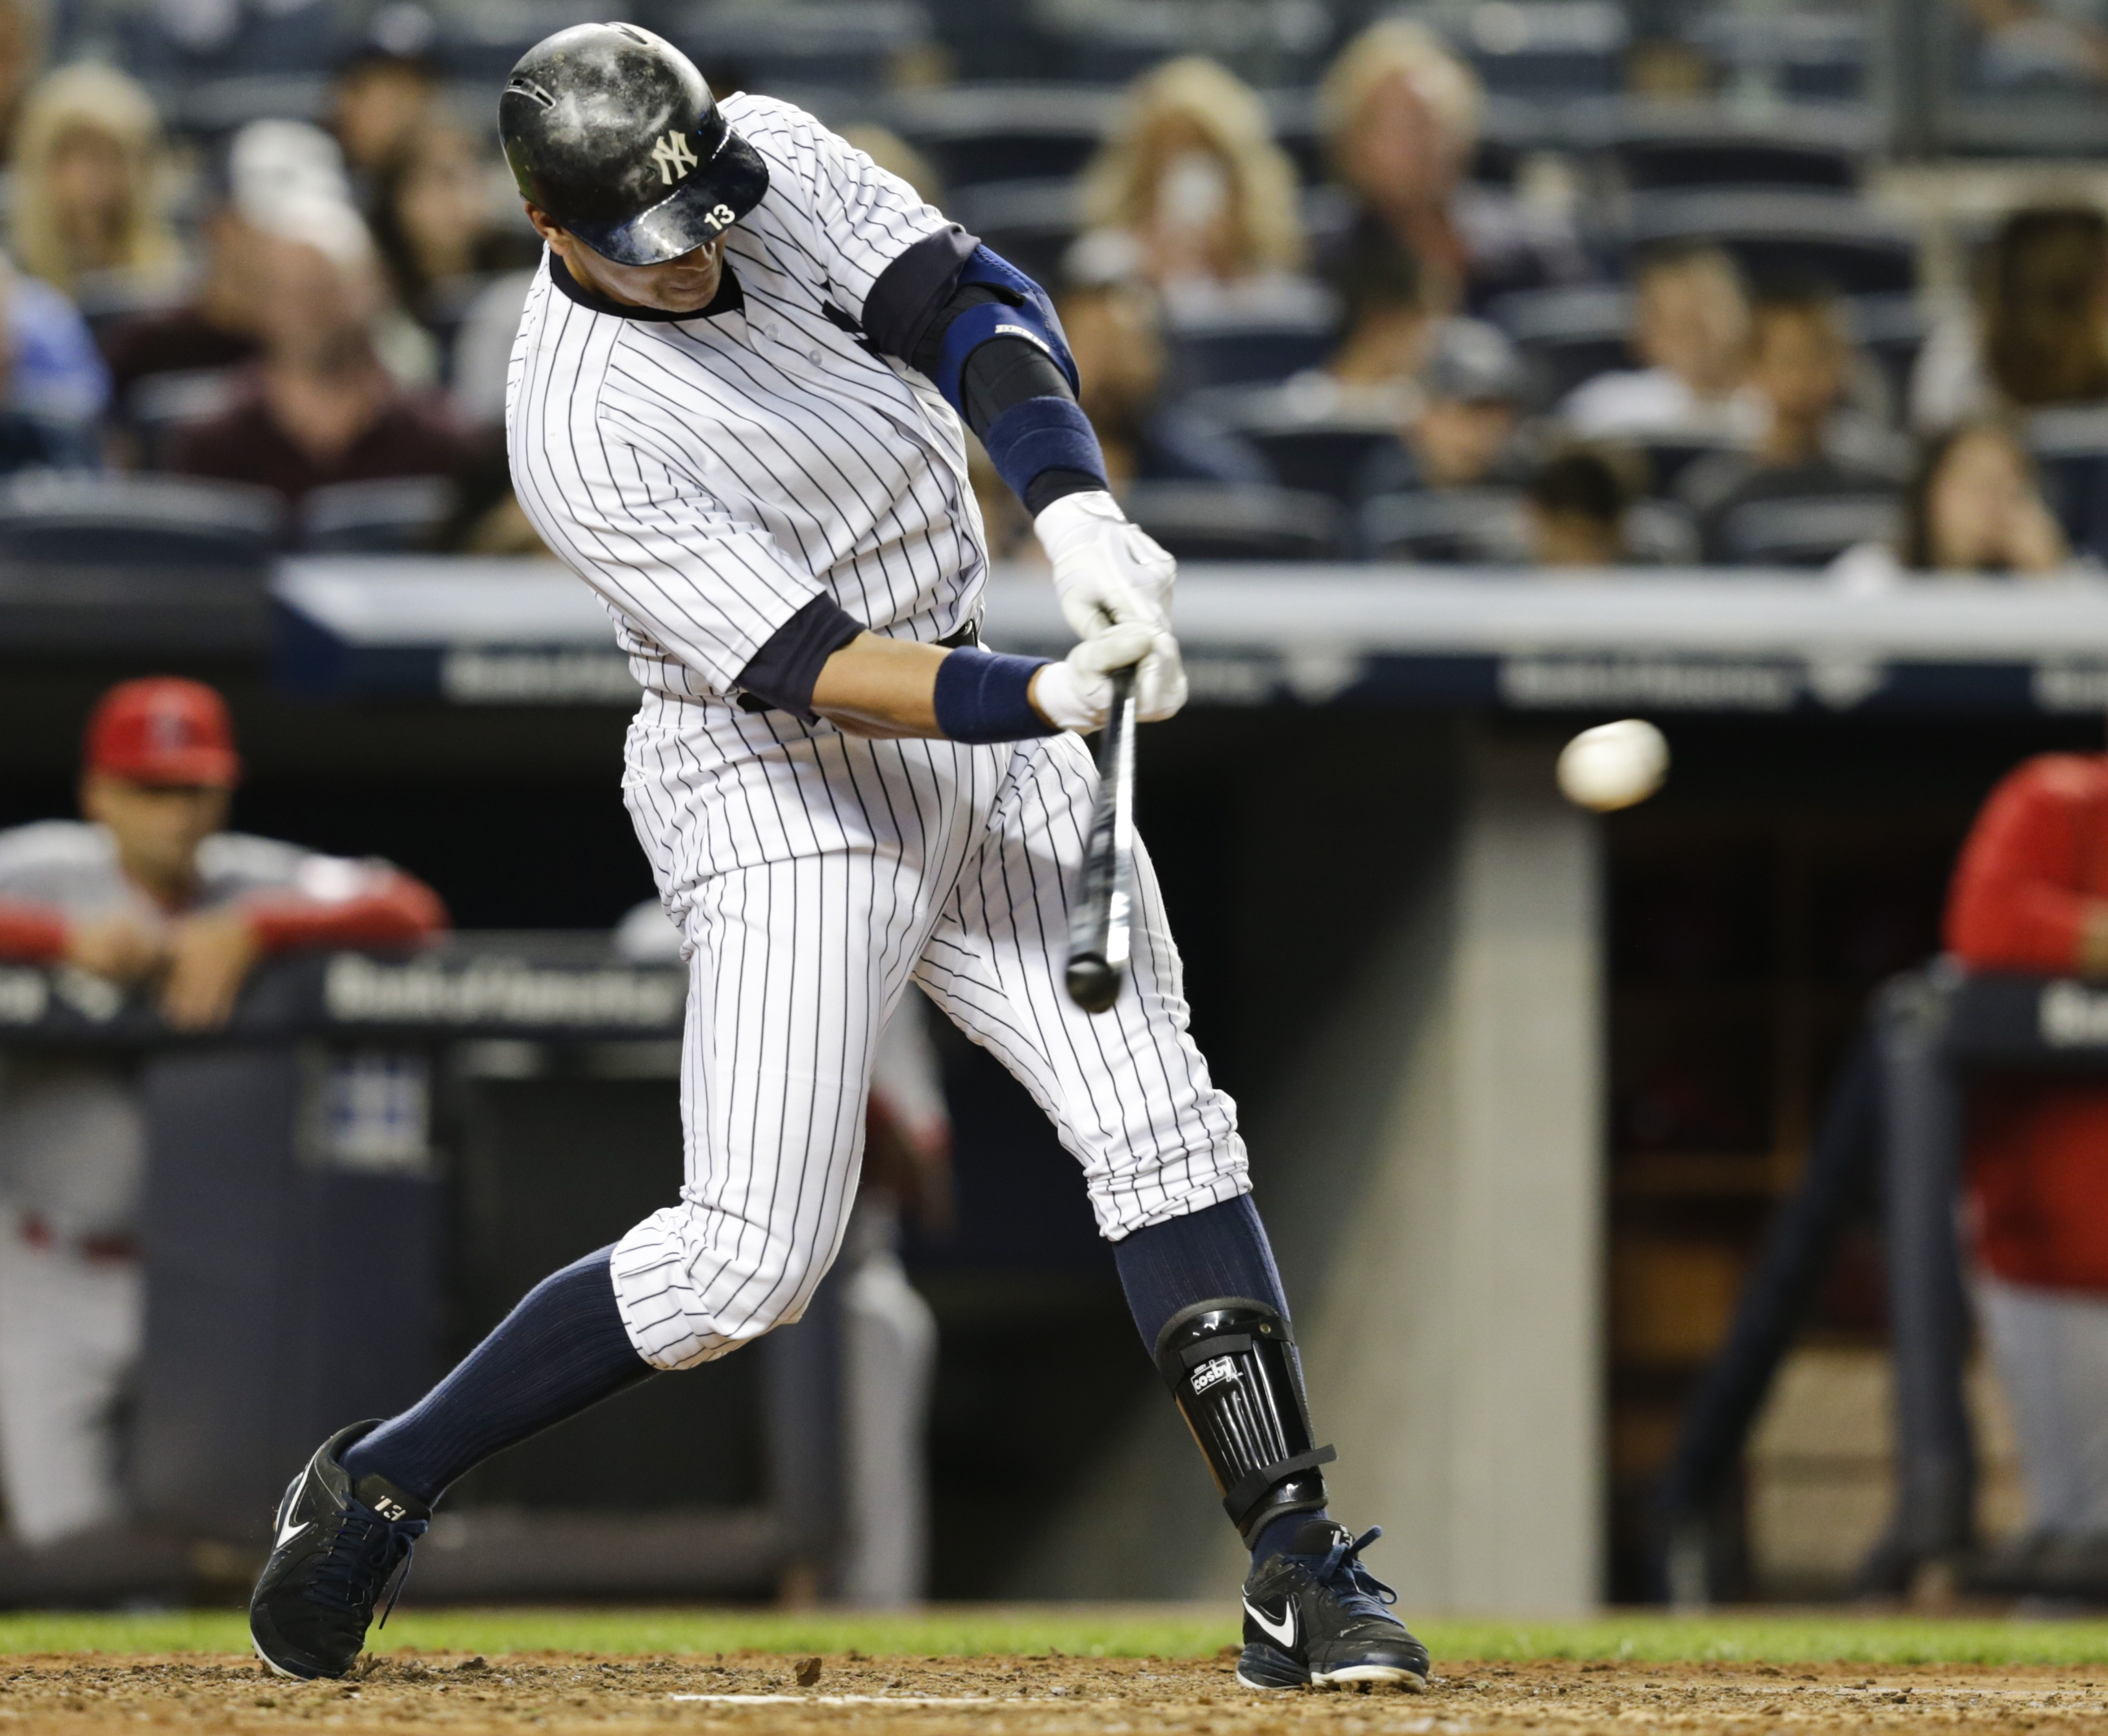 New York Yankees' Alex Rodriguez hits an hits an RBI single during the fifth inning of a baseball game against the Los Angeles Angels Friday, June 5, 2015, in New York. (AP Photo/Frank Franklin II)